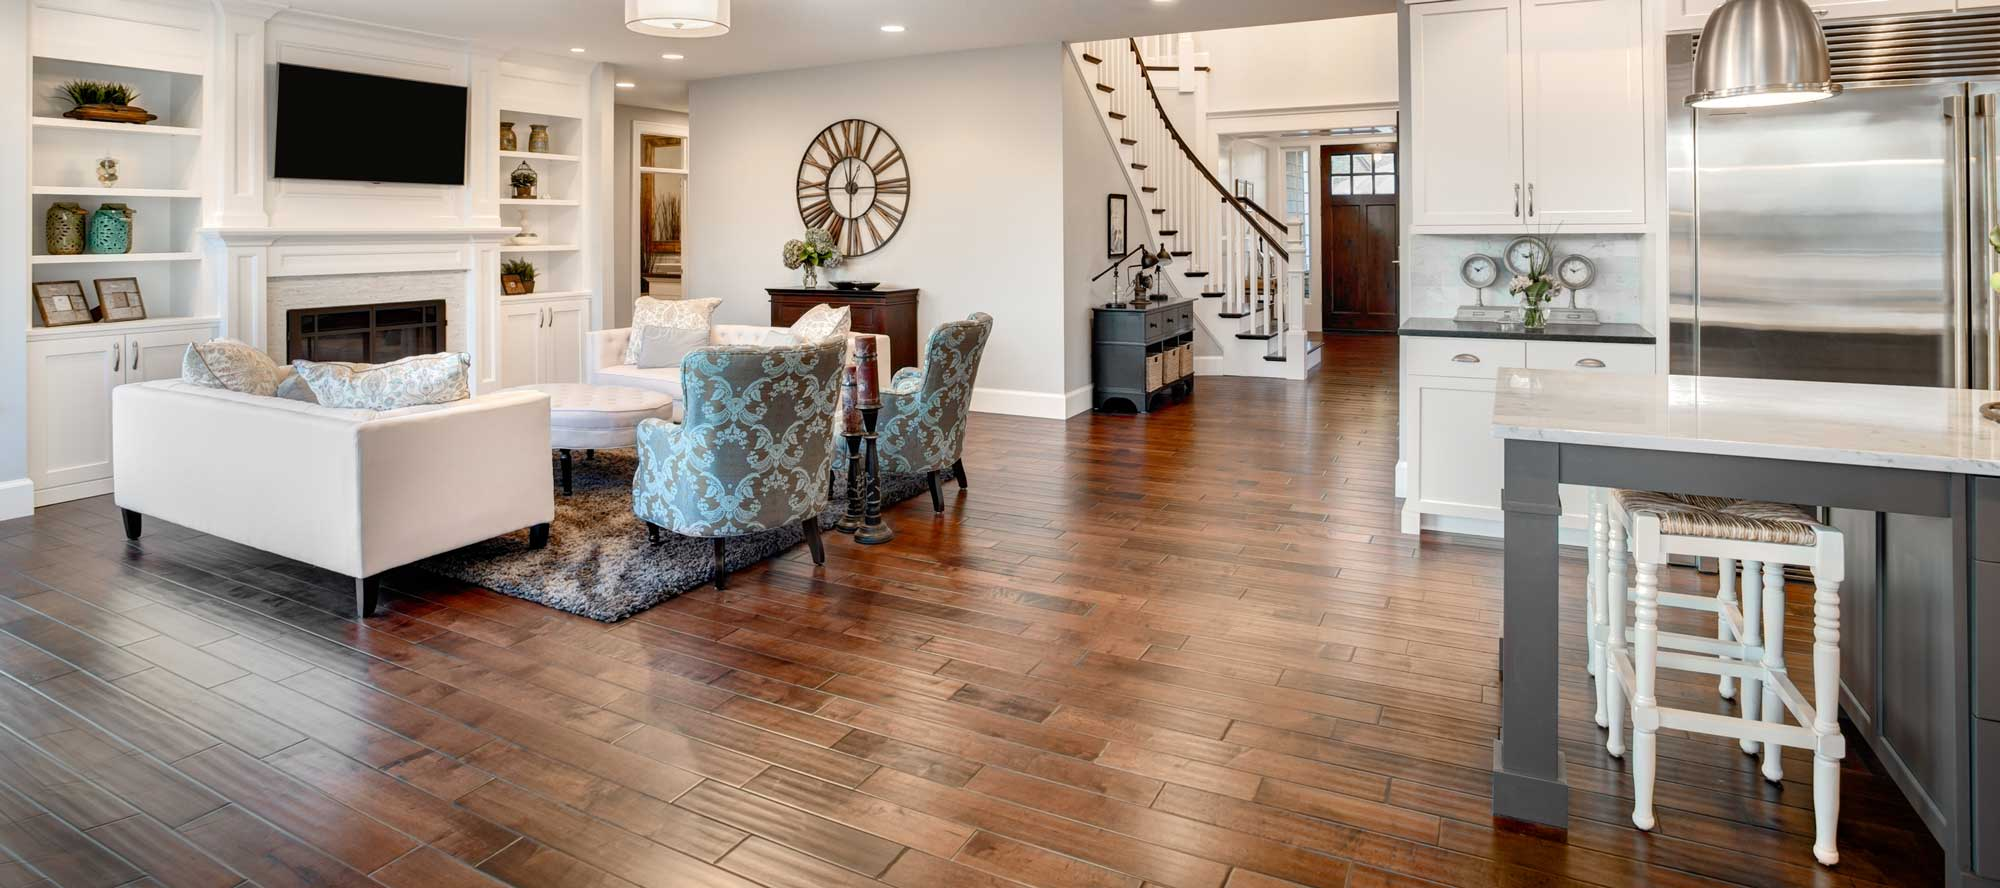 How Much Does A New Hardwood Floor Cost In 2019 Inch